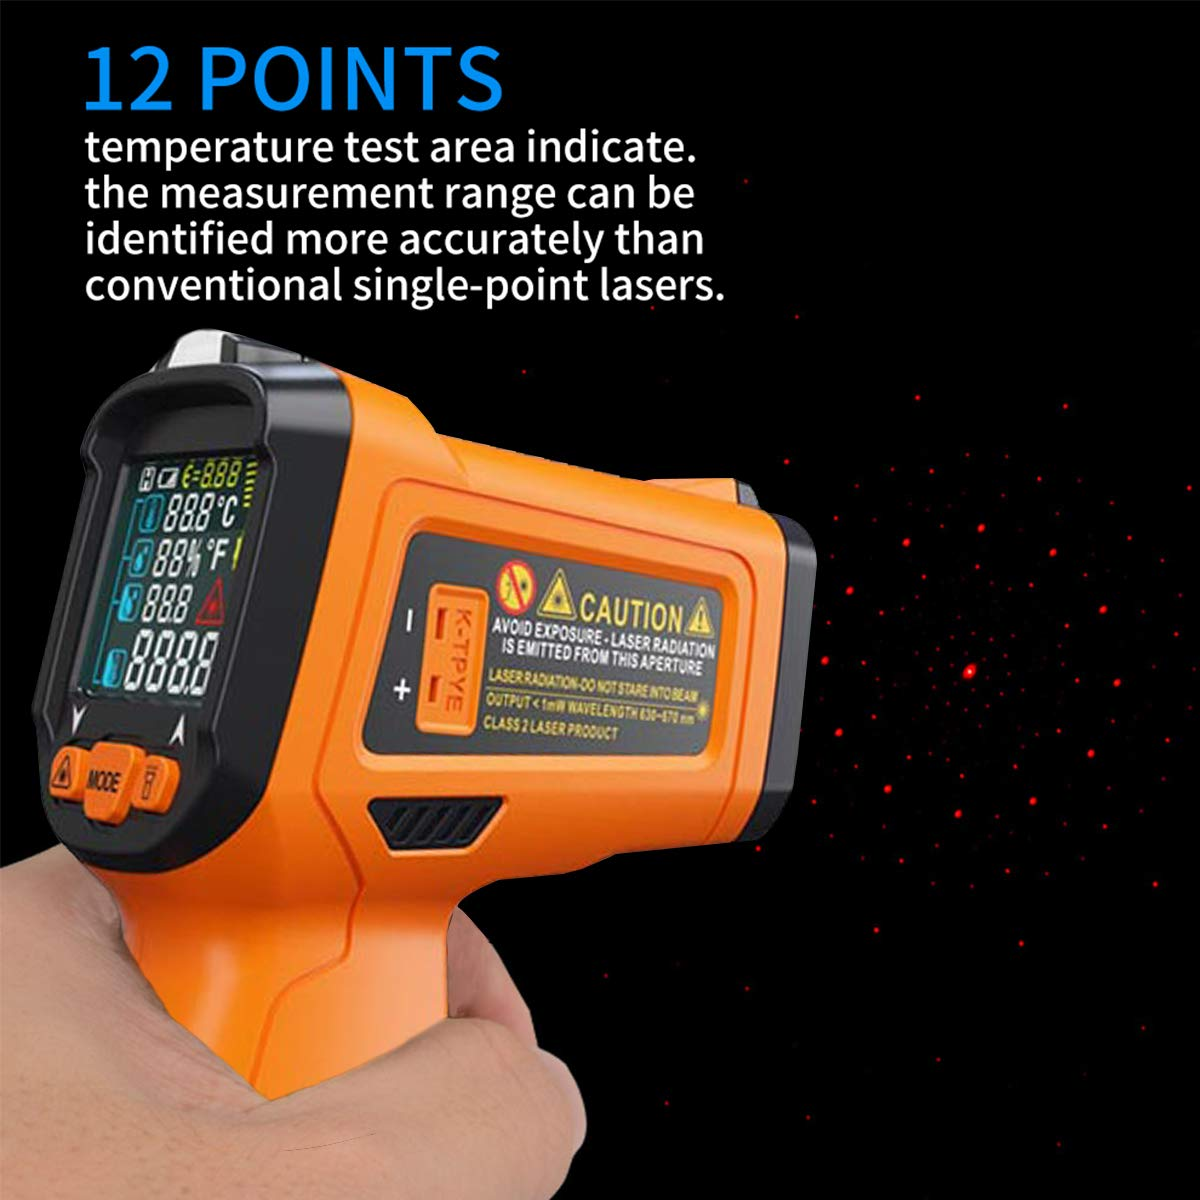 Laser Infrared Thermometer,HANMER Non Contact Temperature Gun Instant-Read -58 ℉to 1472℉with LED Display K-Type Thermocouple for Kitchen Cooking BBQ Automotive and Industrial PM6530D Thermometer by HANMATEK (Image #3)